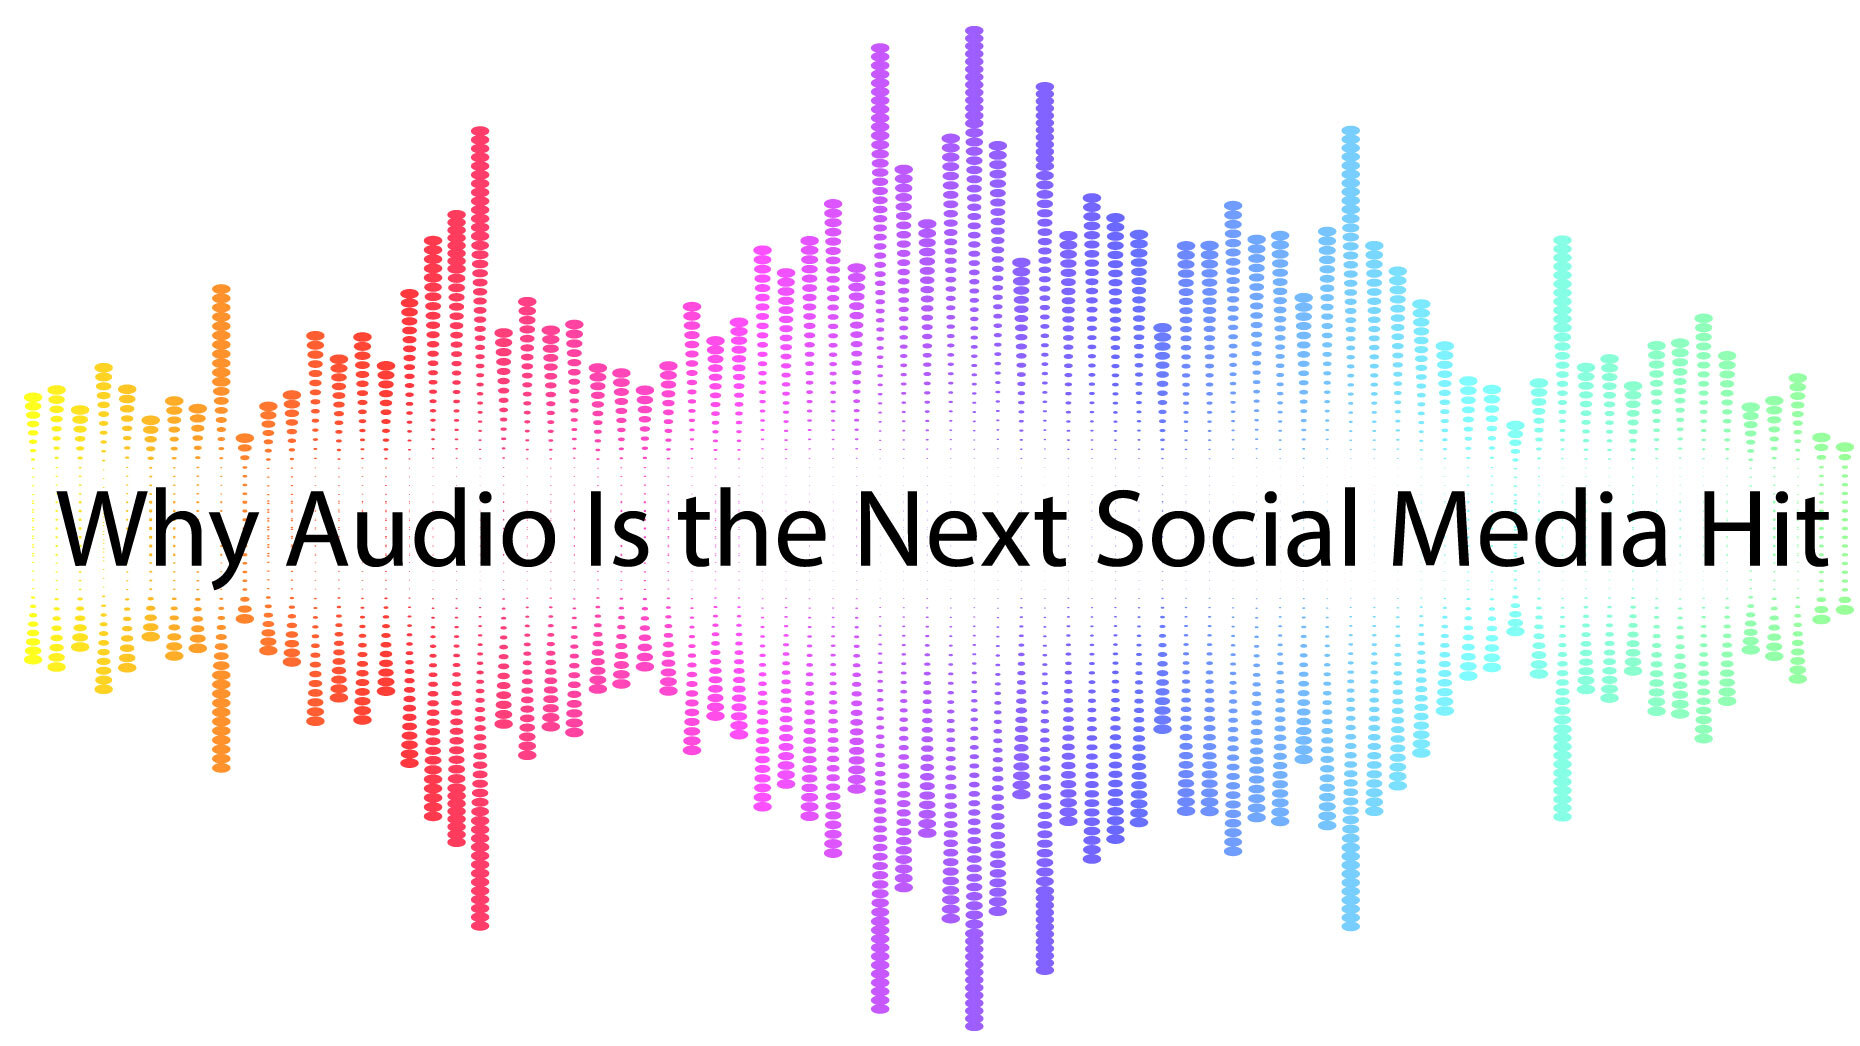 Why Audio is the Next Social Media Hit